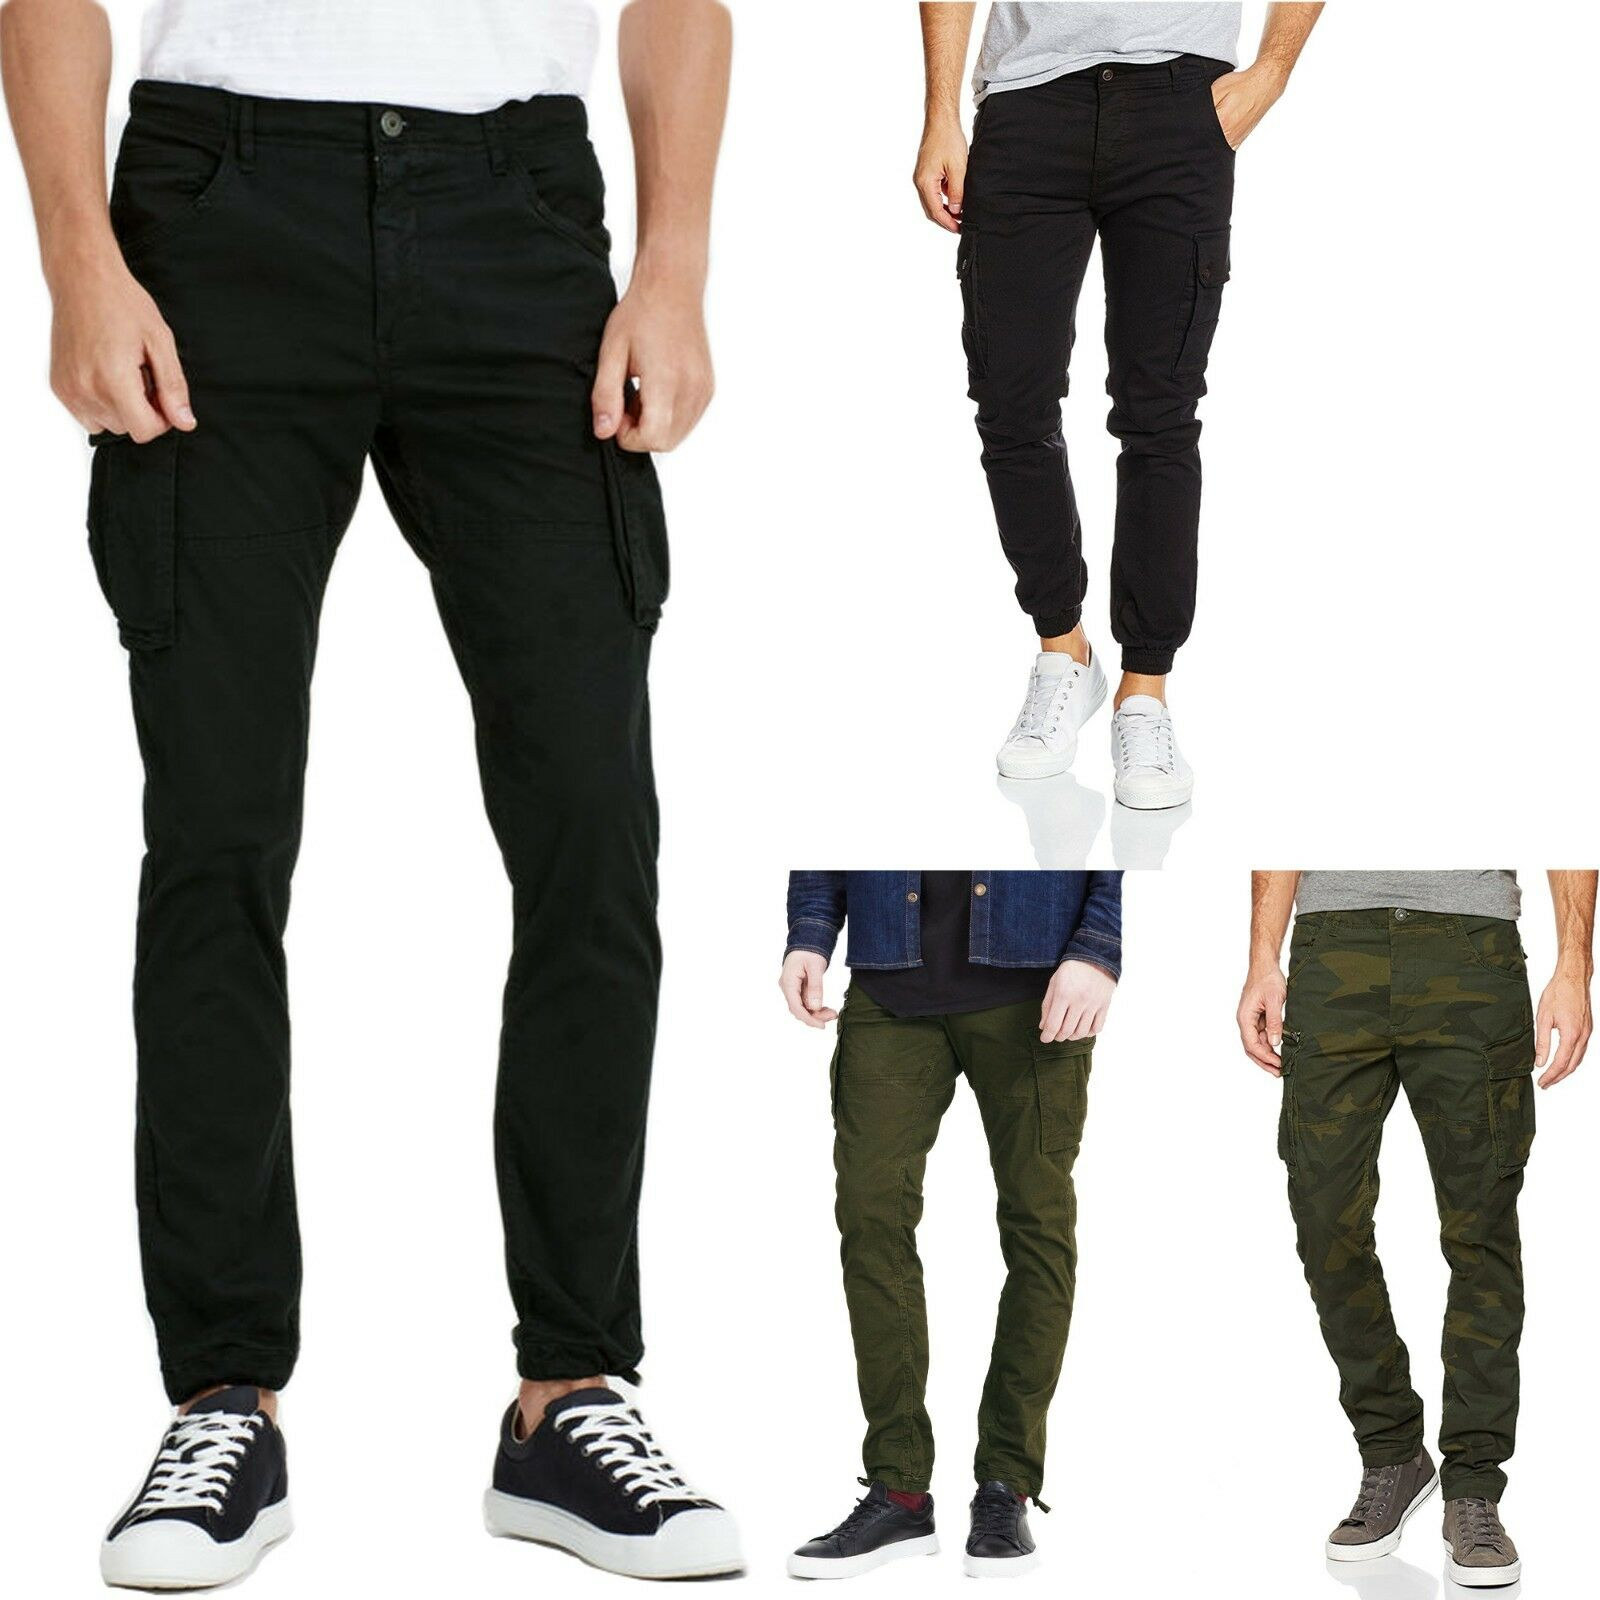 Jack Jones Men/'s Chino Trousers Olive Night Casual XXL Brand New FREE DELIVERY